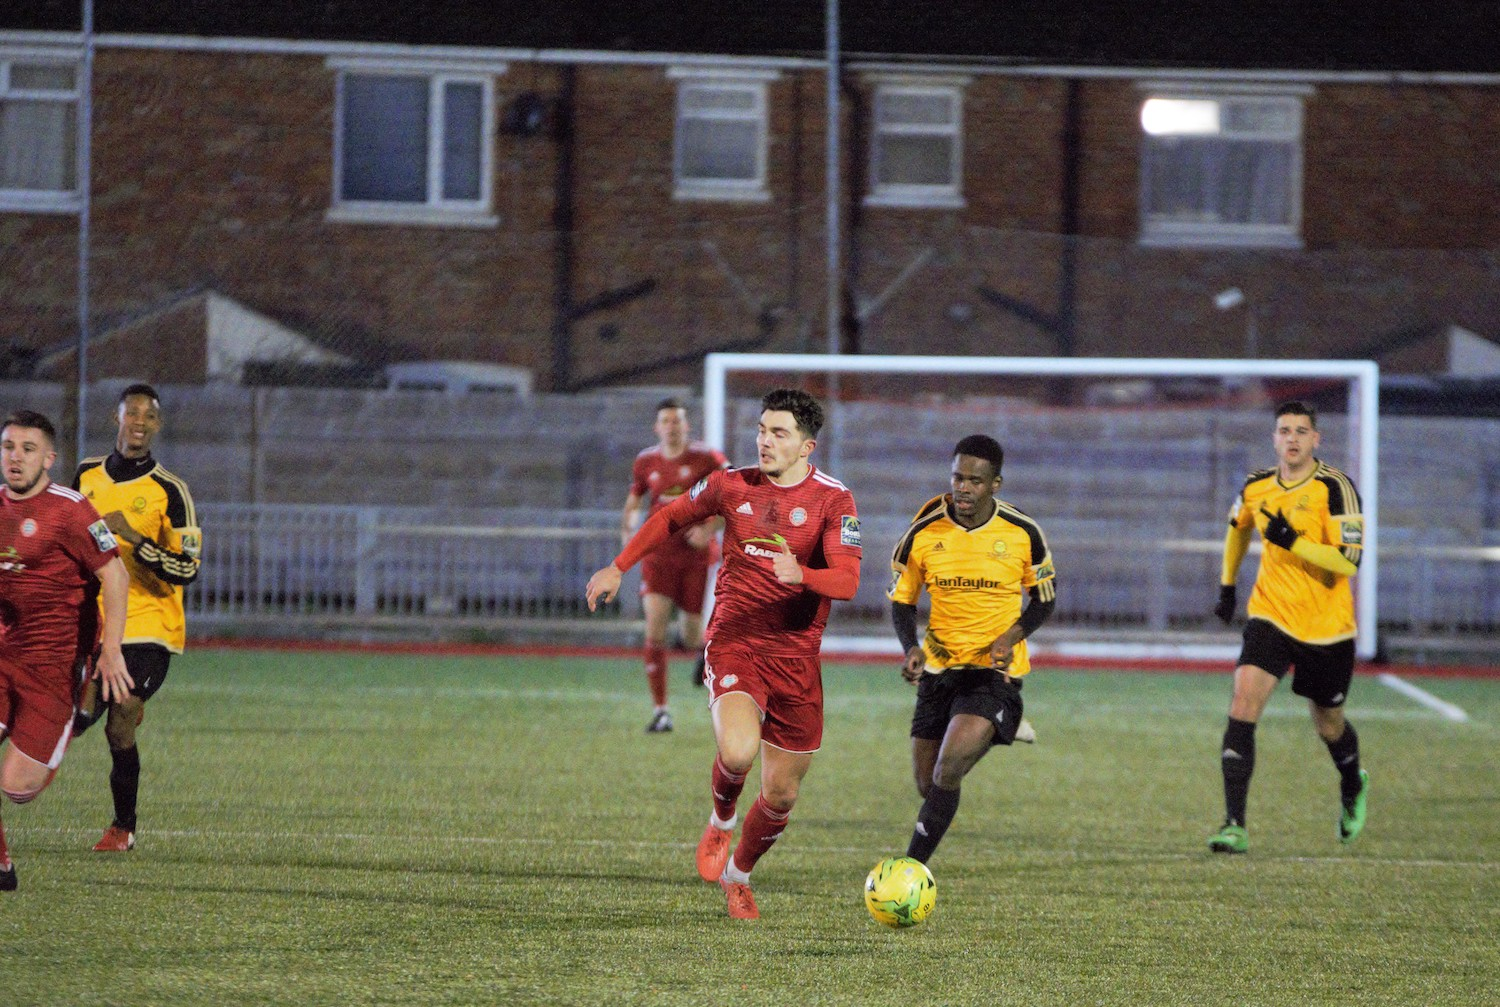 Read the full article - FIVE FACTS: Merstham